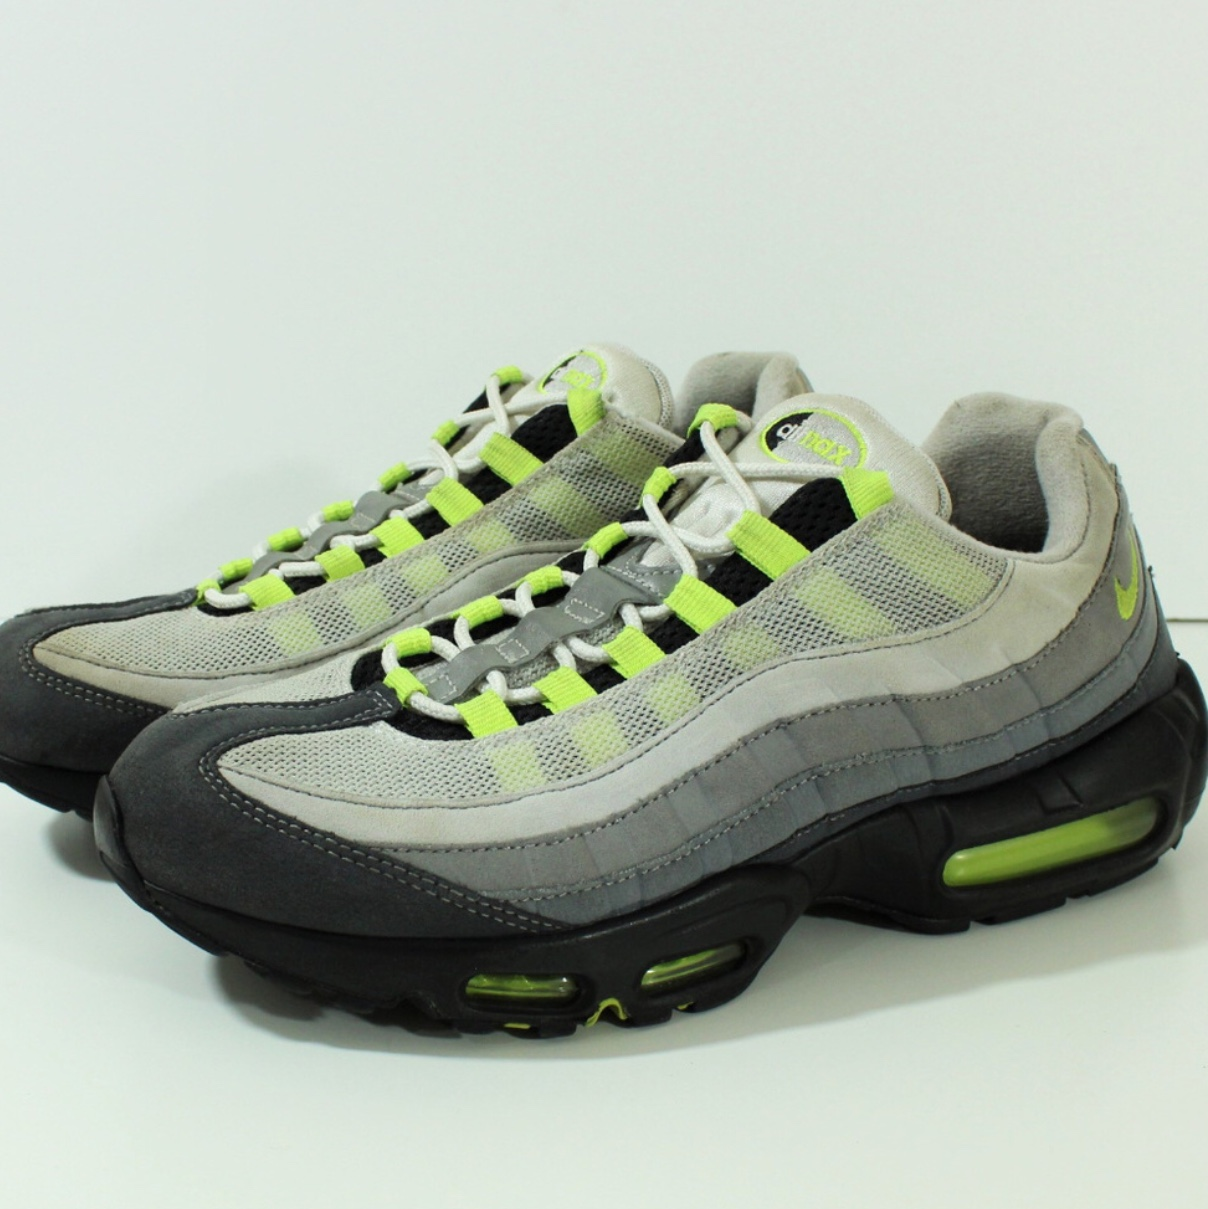 reputable site ca829 b9d8f 100% Authentic Nike Air Max 95 OG